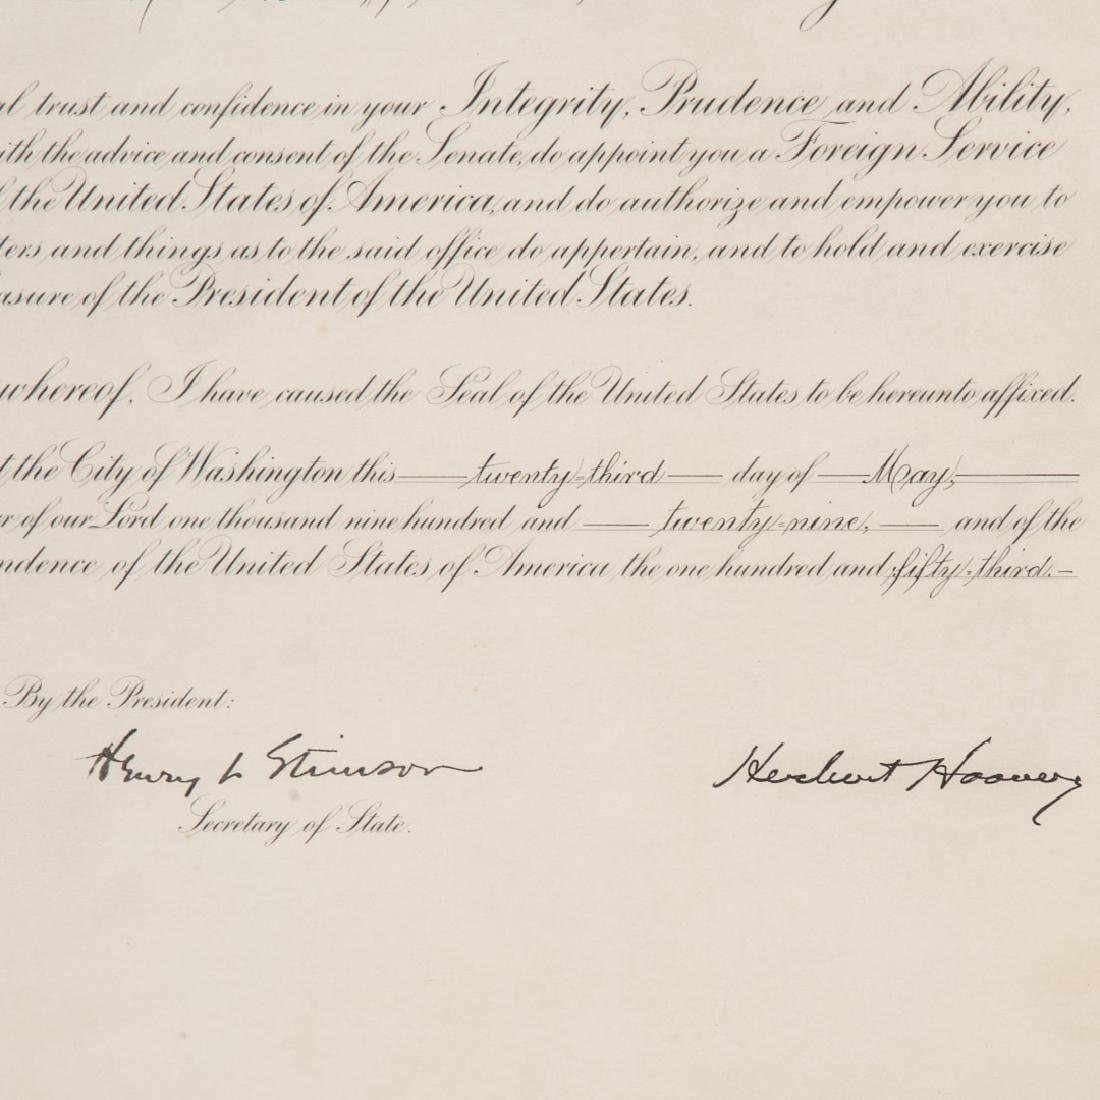 Hoover/Stimson signed document - 3